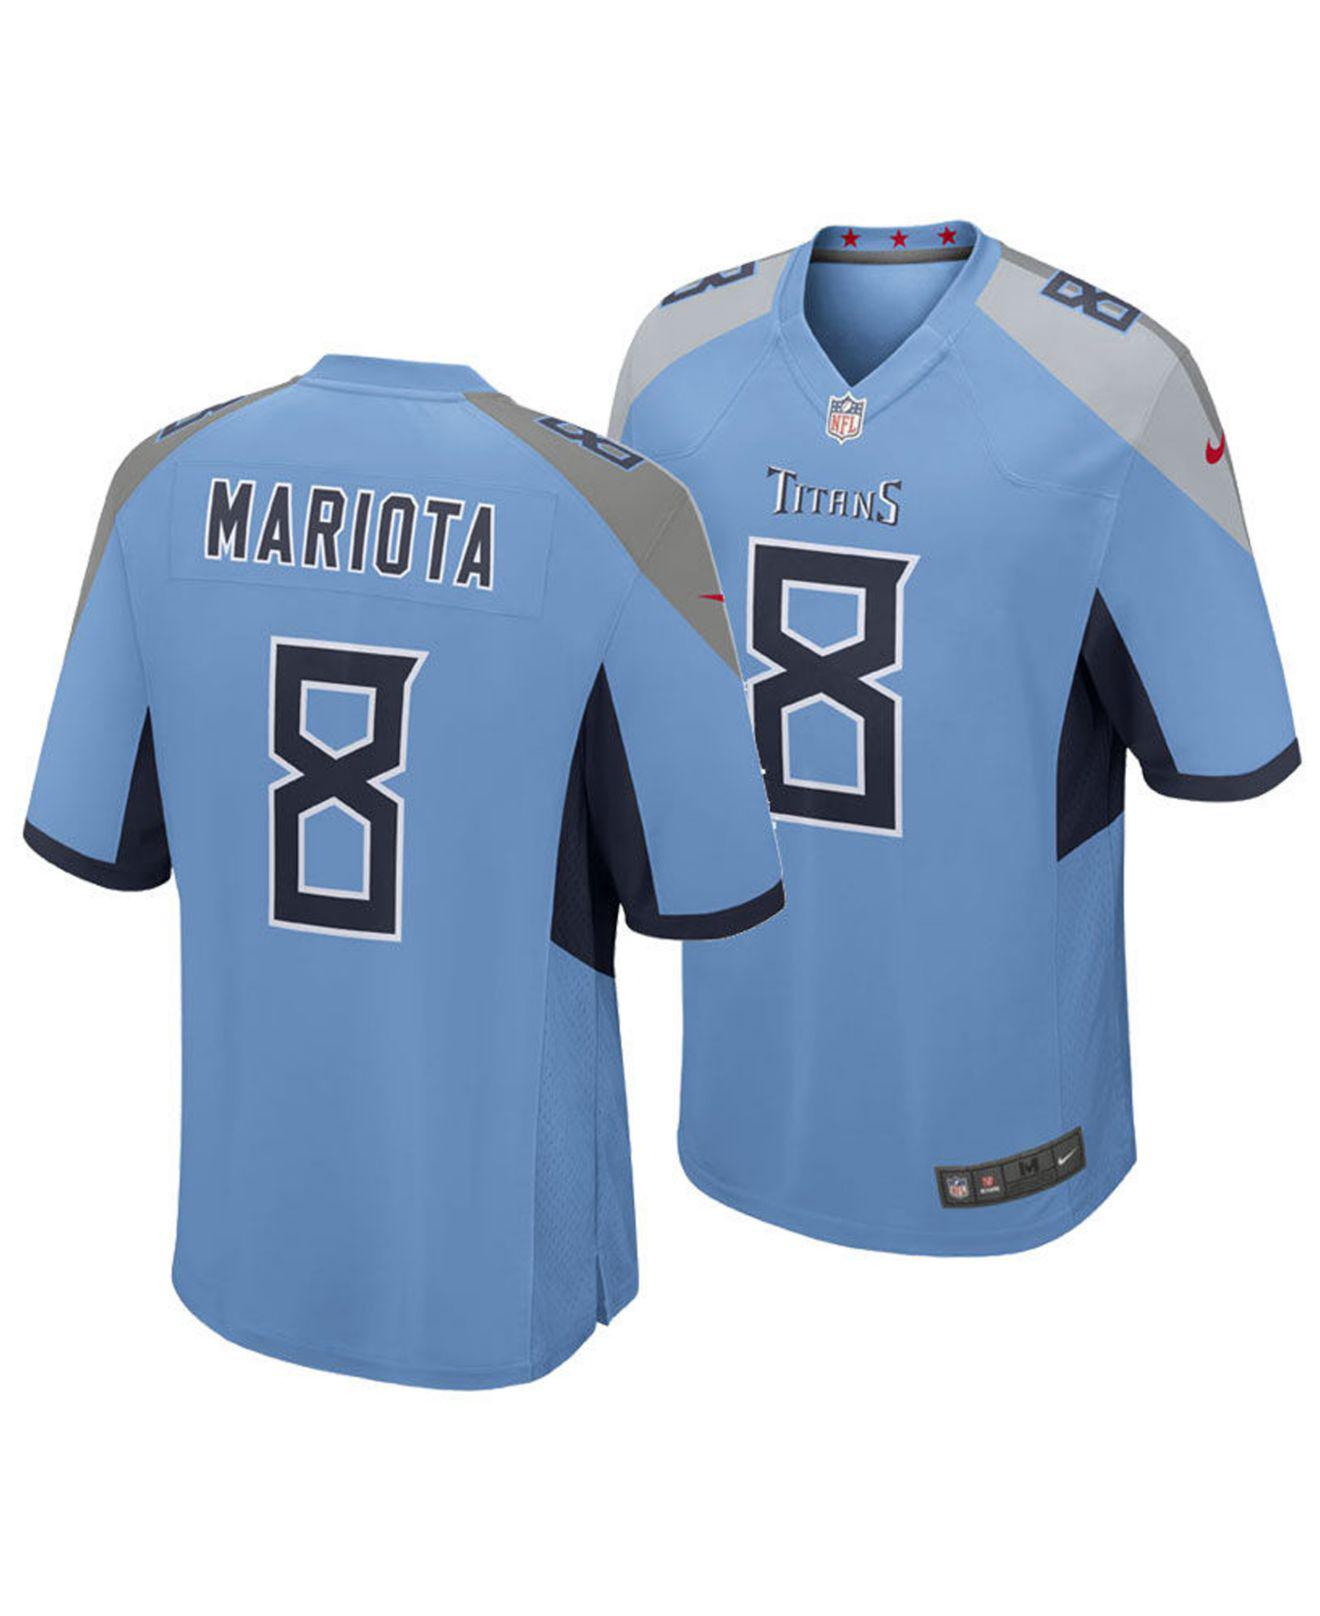 d7107de7 Lyst - Nike Marcus Mariota Tennessee Titans Game Jersey in Blue for Men